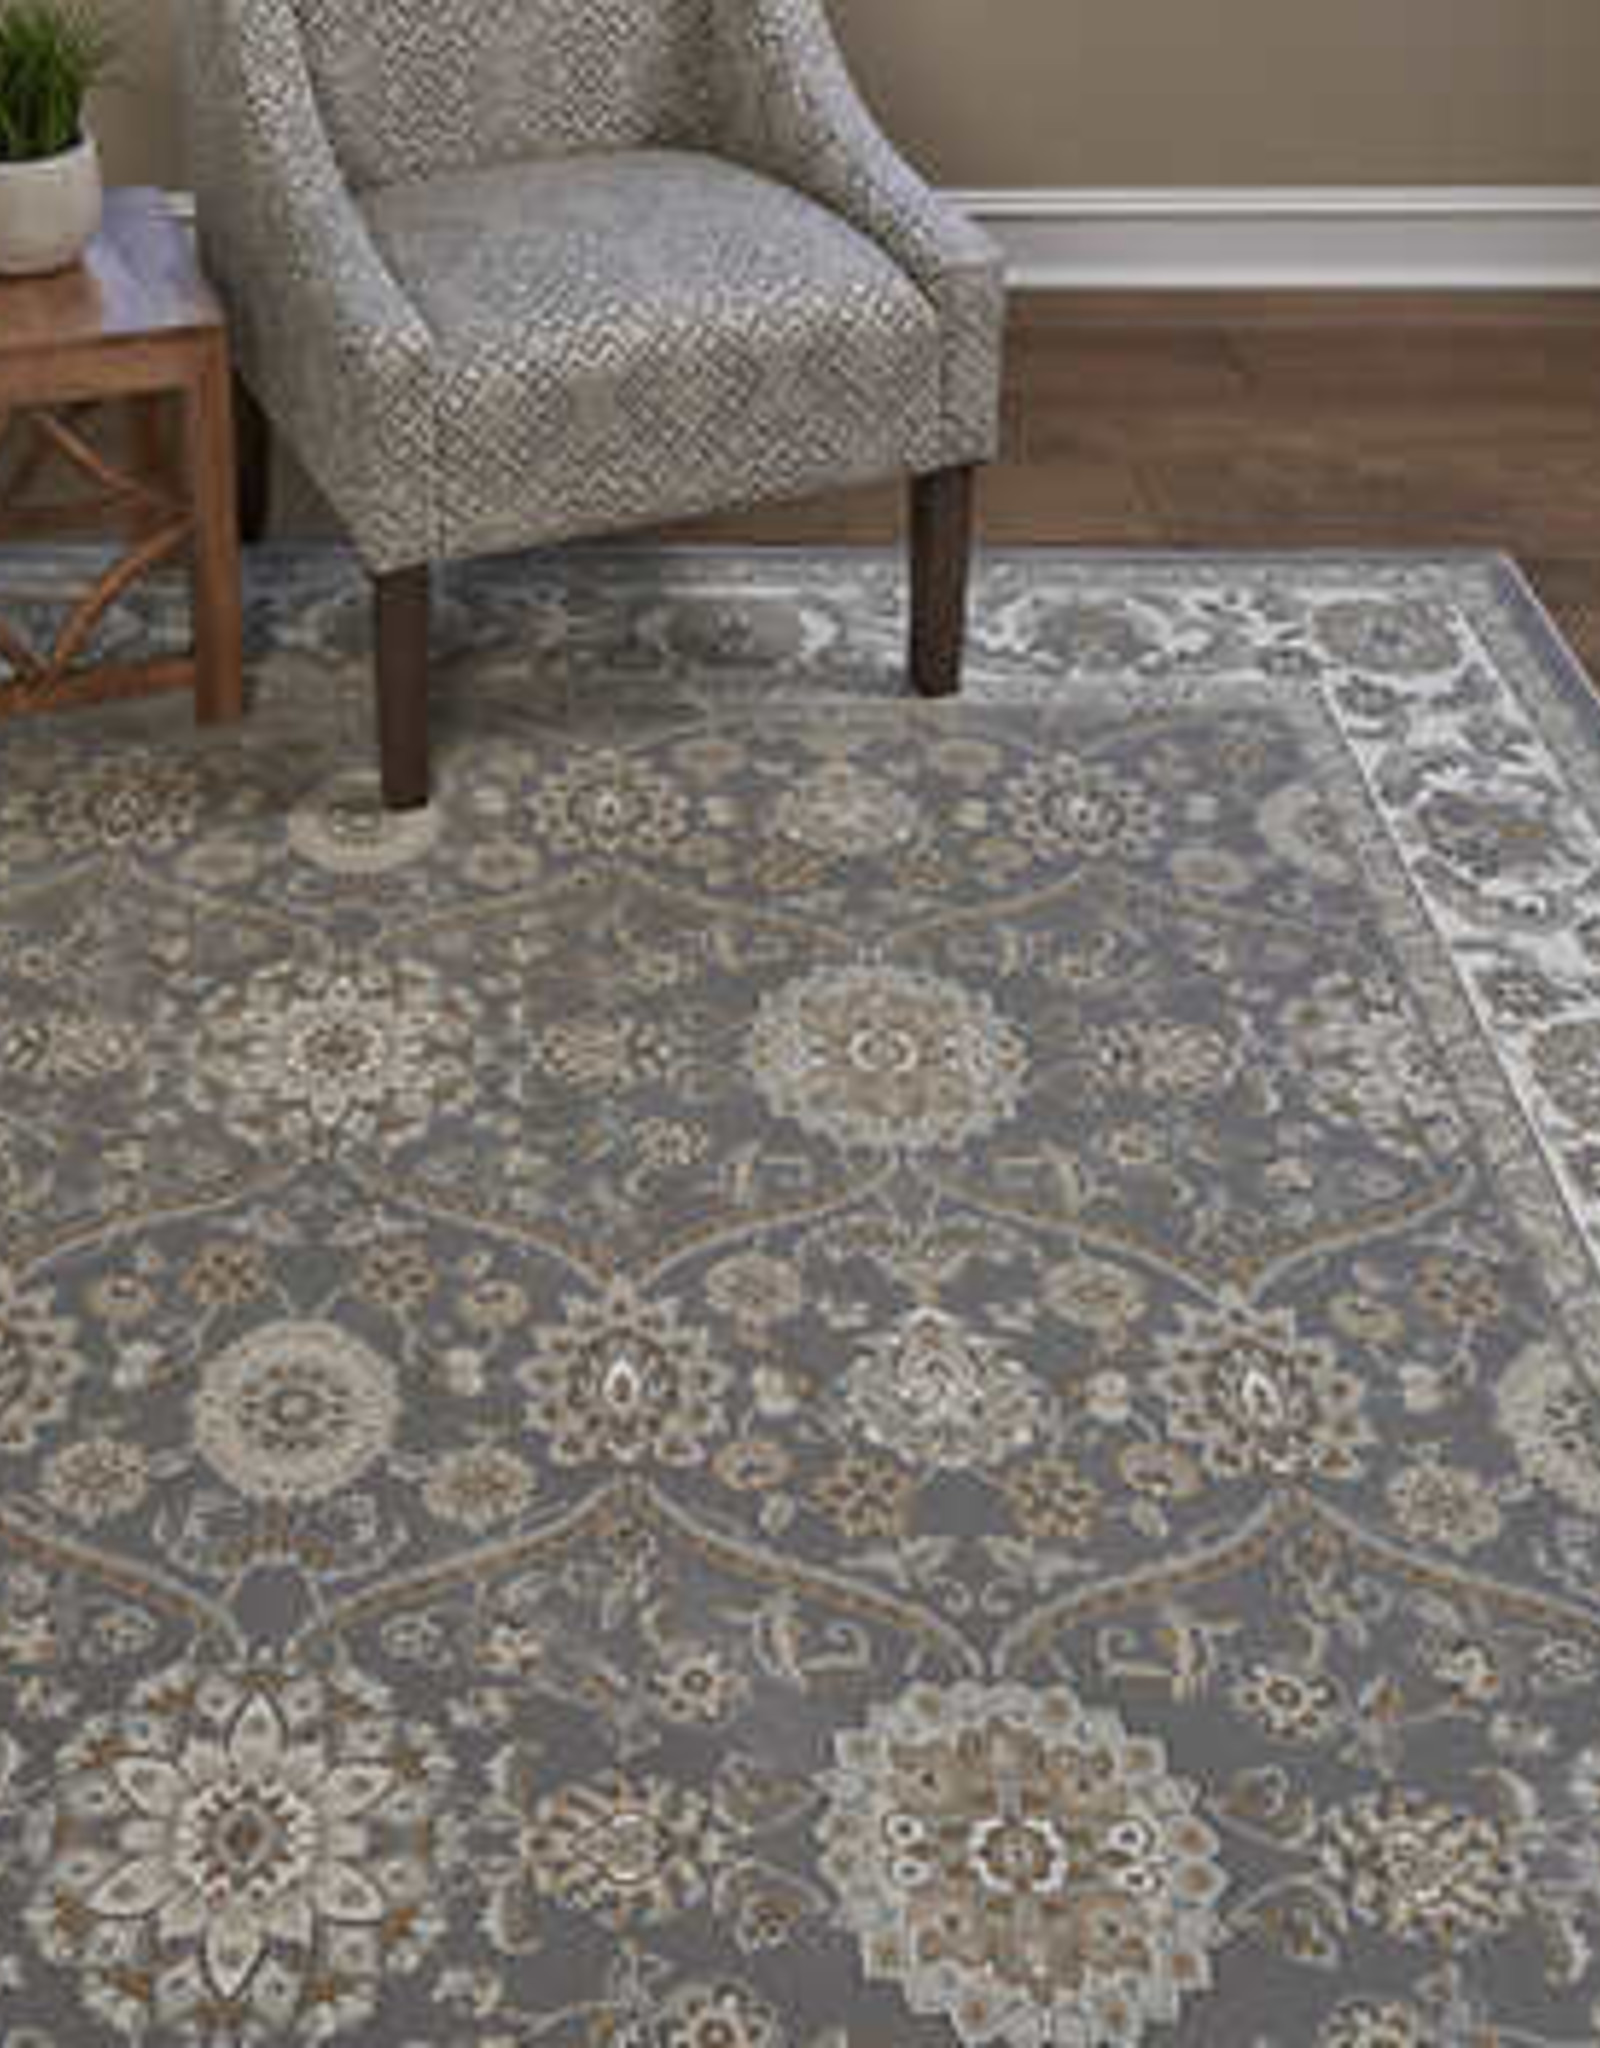 GA GERTMENIAN AND SONS 5X7 Thomasville Timeless Classic Rug Collection, Arundel Gray